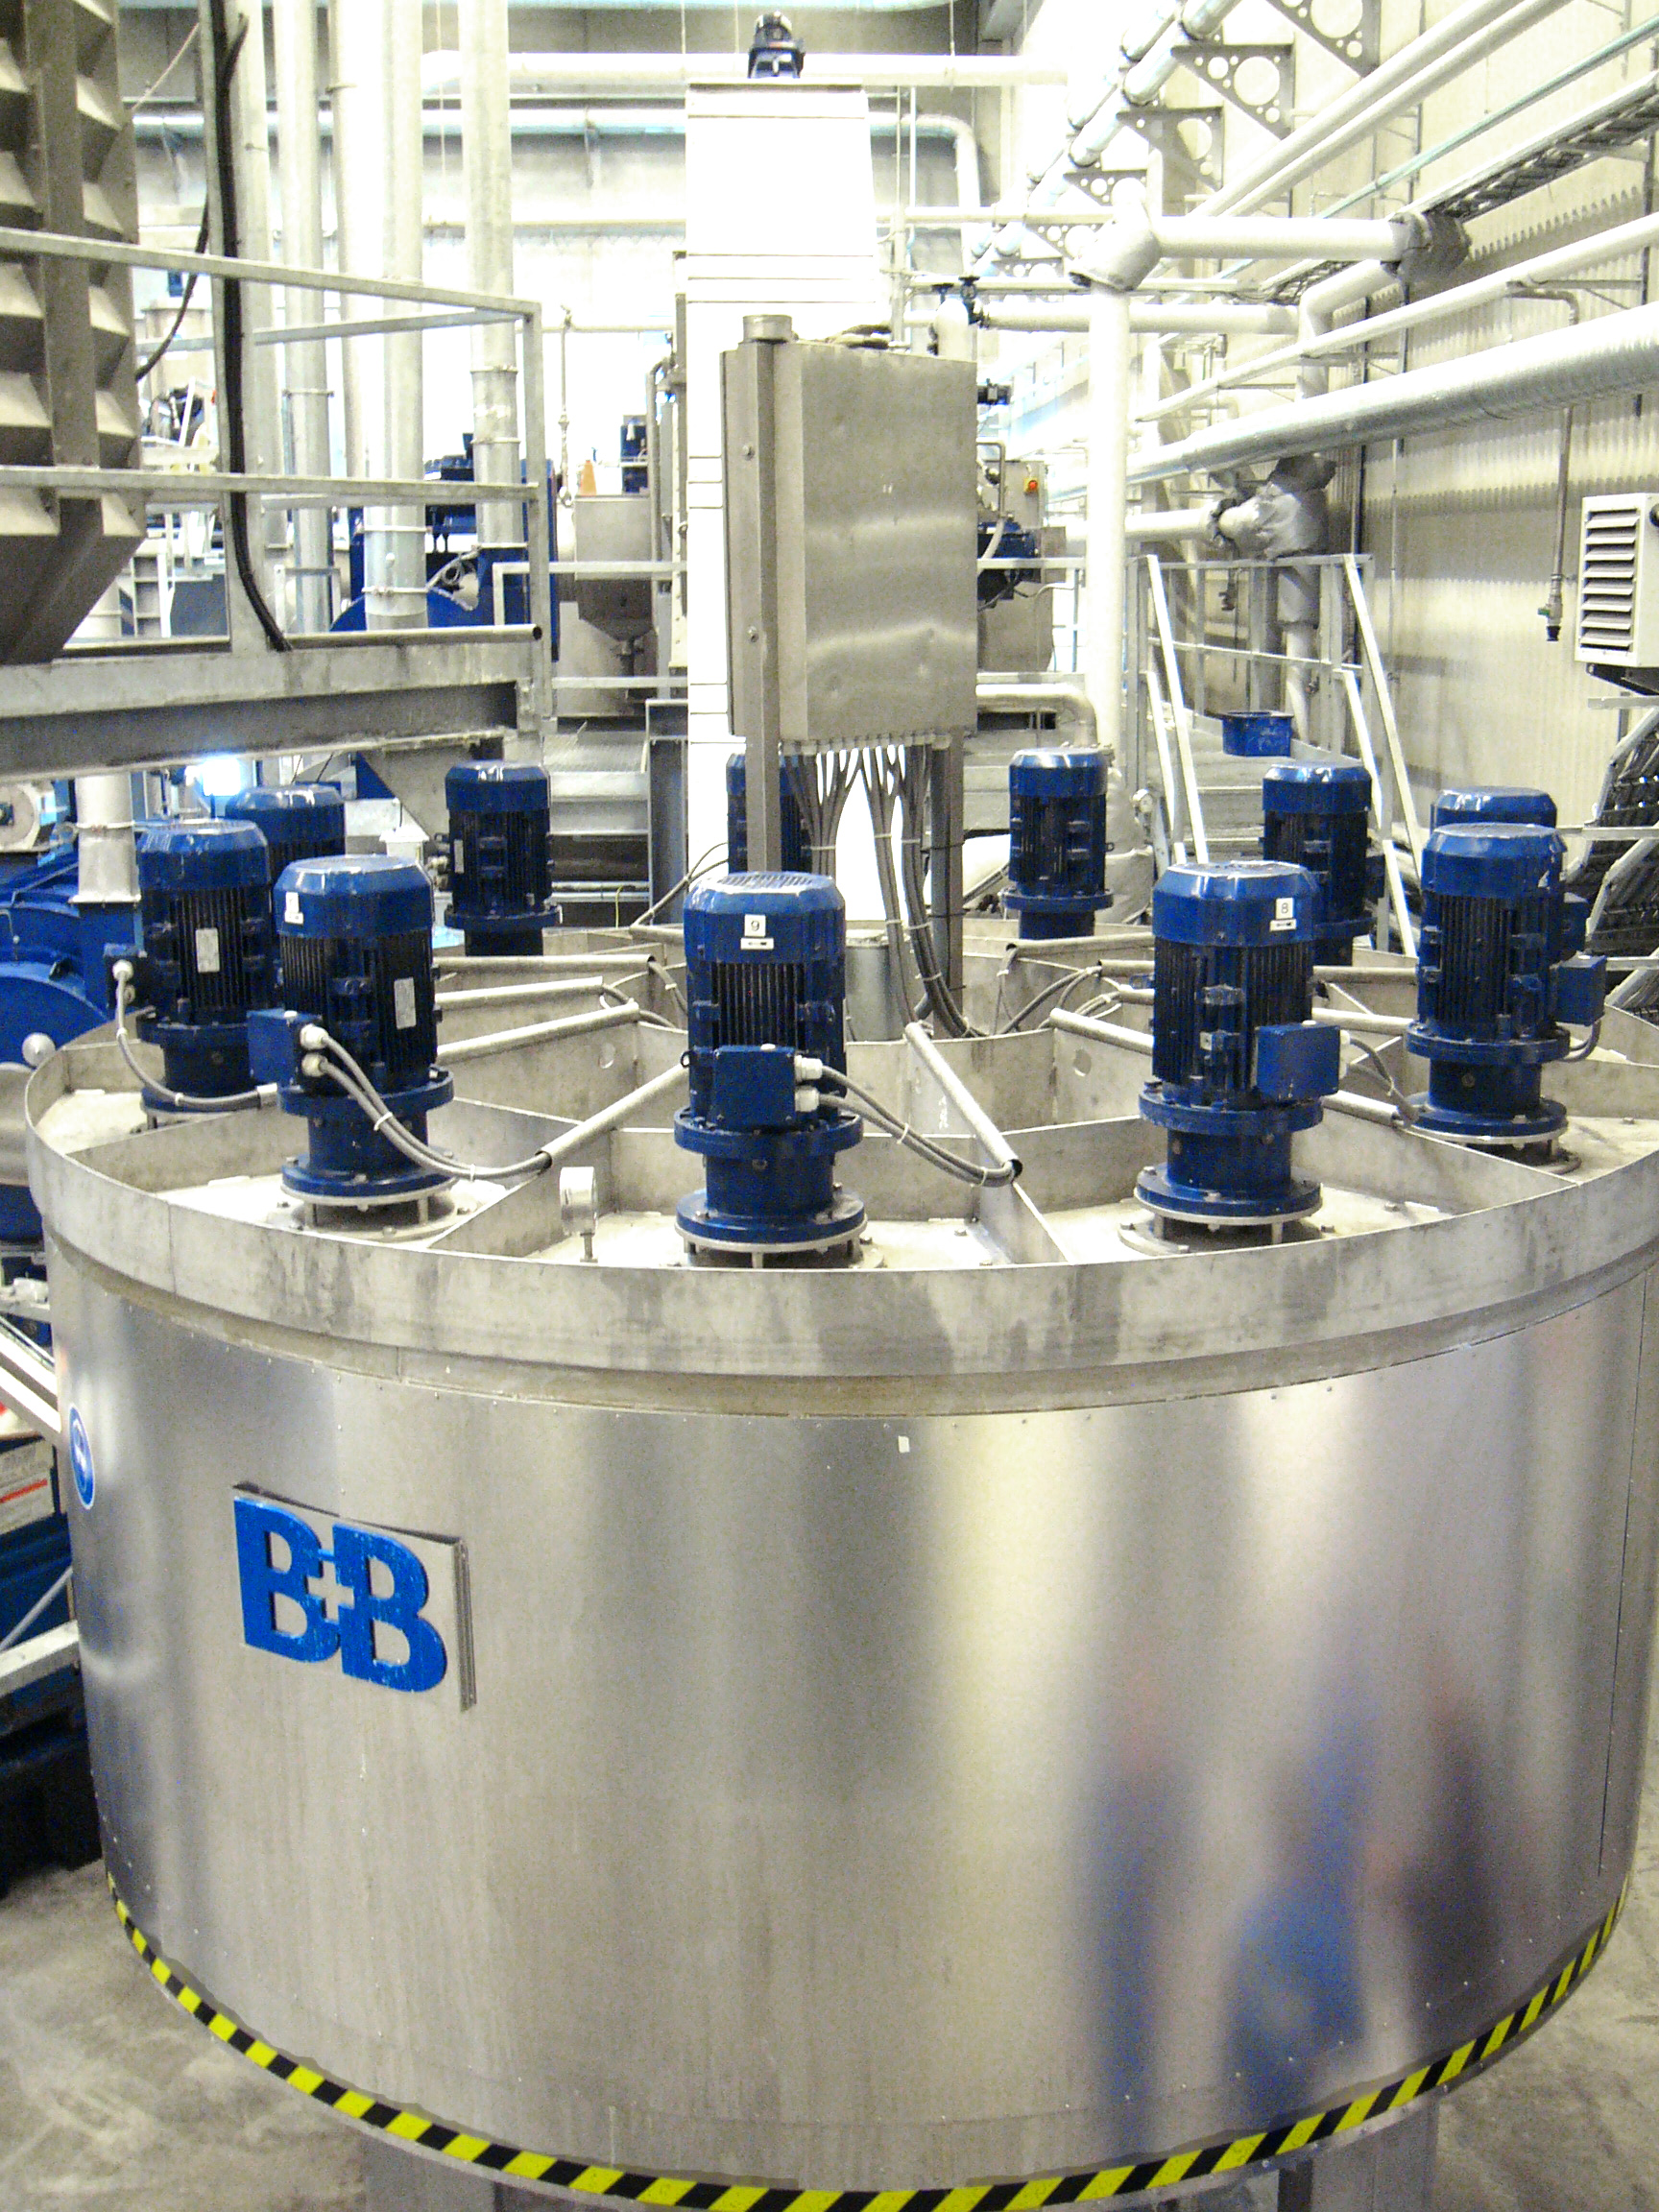 PET flakes hot washer with continuous operation - B+B Anlagenbau